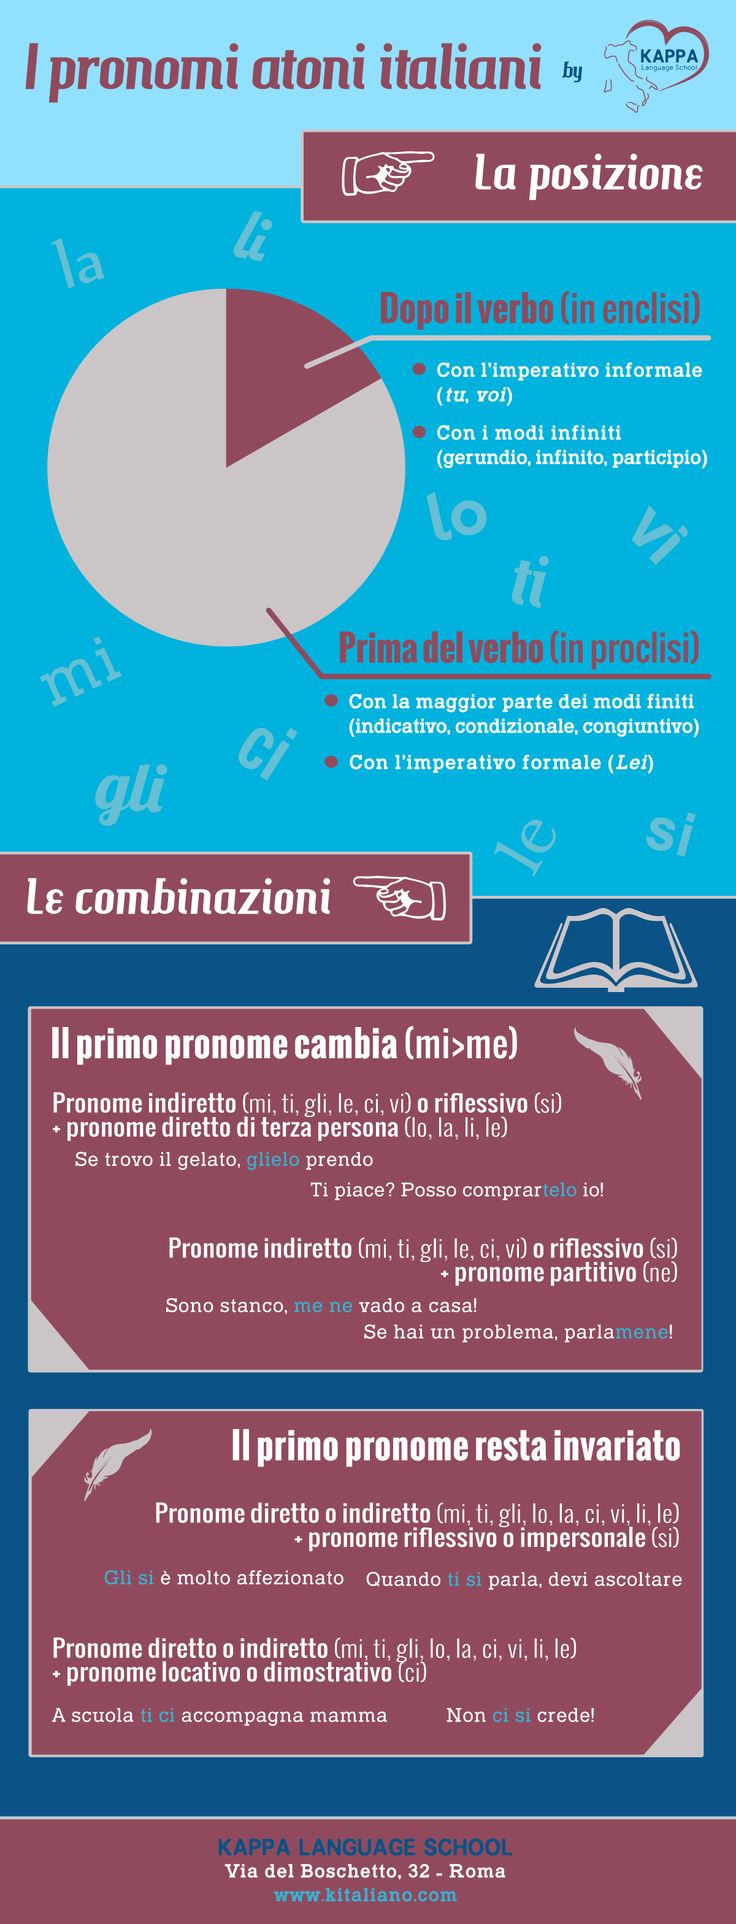 Italian pronouns can be a nightmare: here's an infographic to understand better their form, their position and their use. #italianlanguage #learnitalian #italiano #pronomi